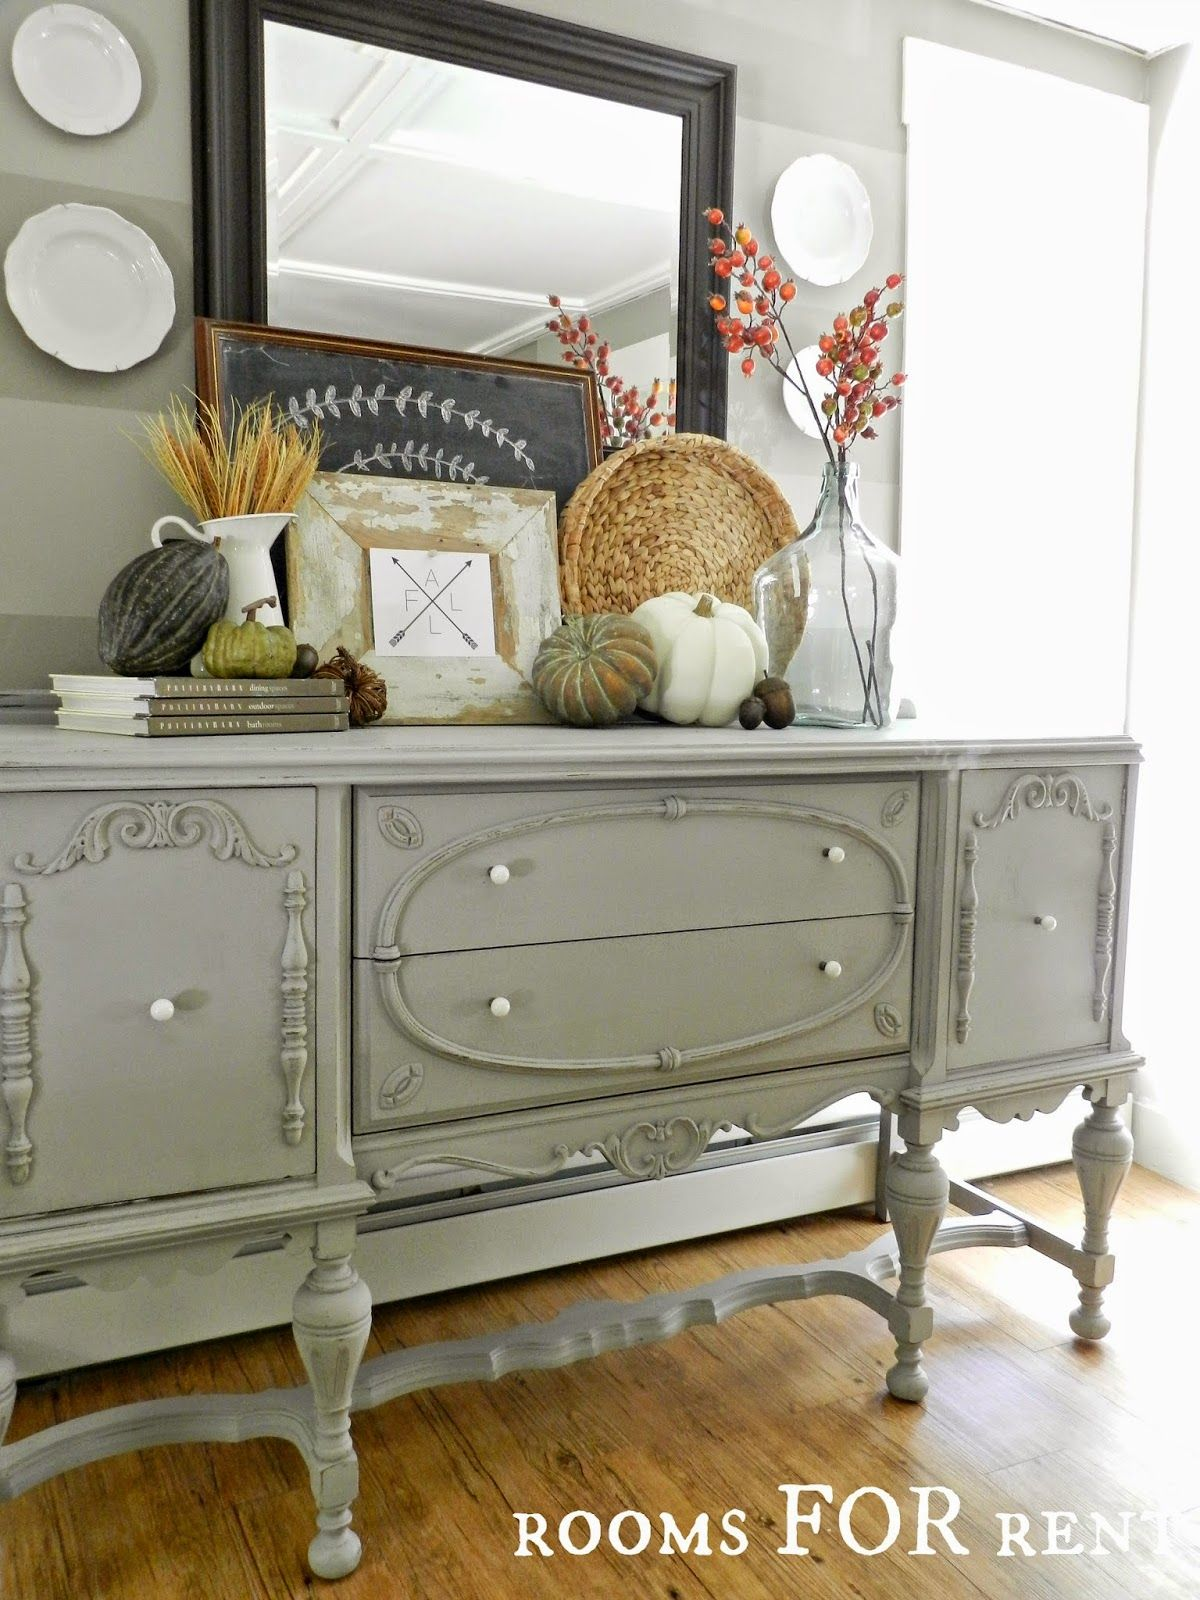 Pebble Beach Country Chic Paint Rooms FOR Rent Fall Vignette And Compass Arrow Dining Room SideboardBuffet